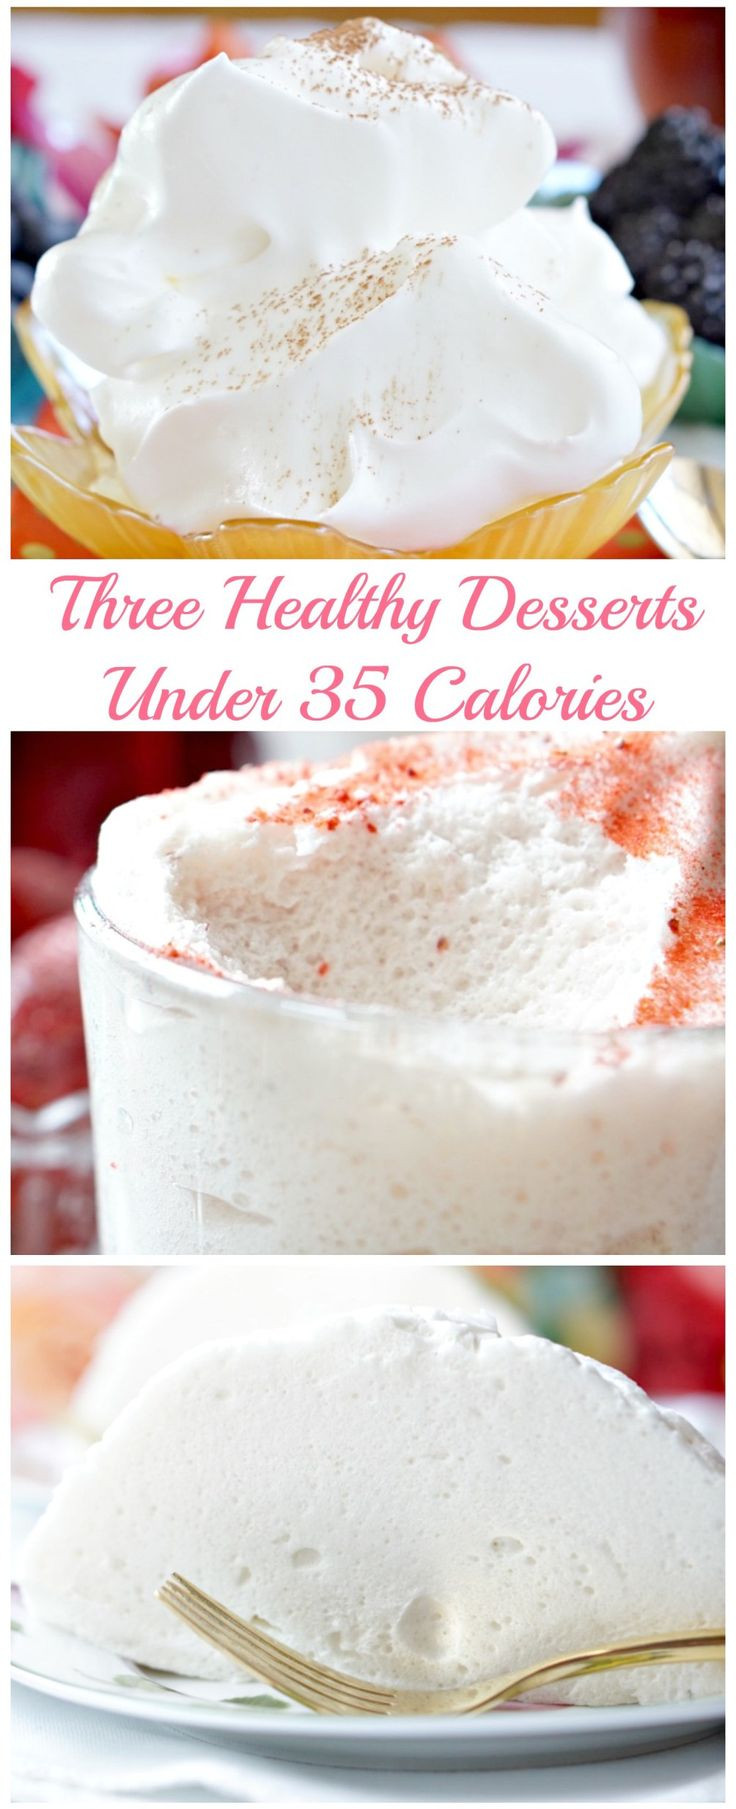 Low Calories Desserts  Avoid Holiday Weight Gain